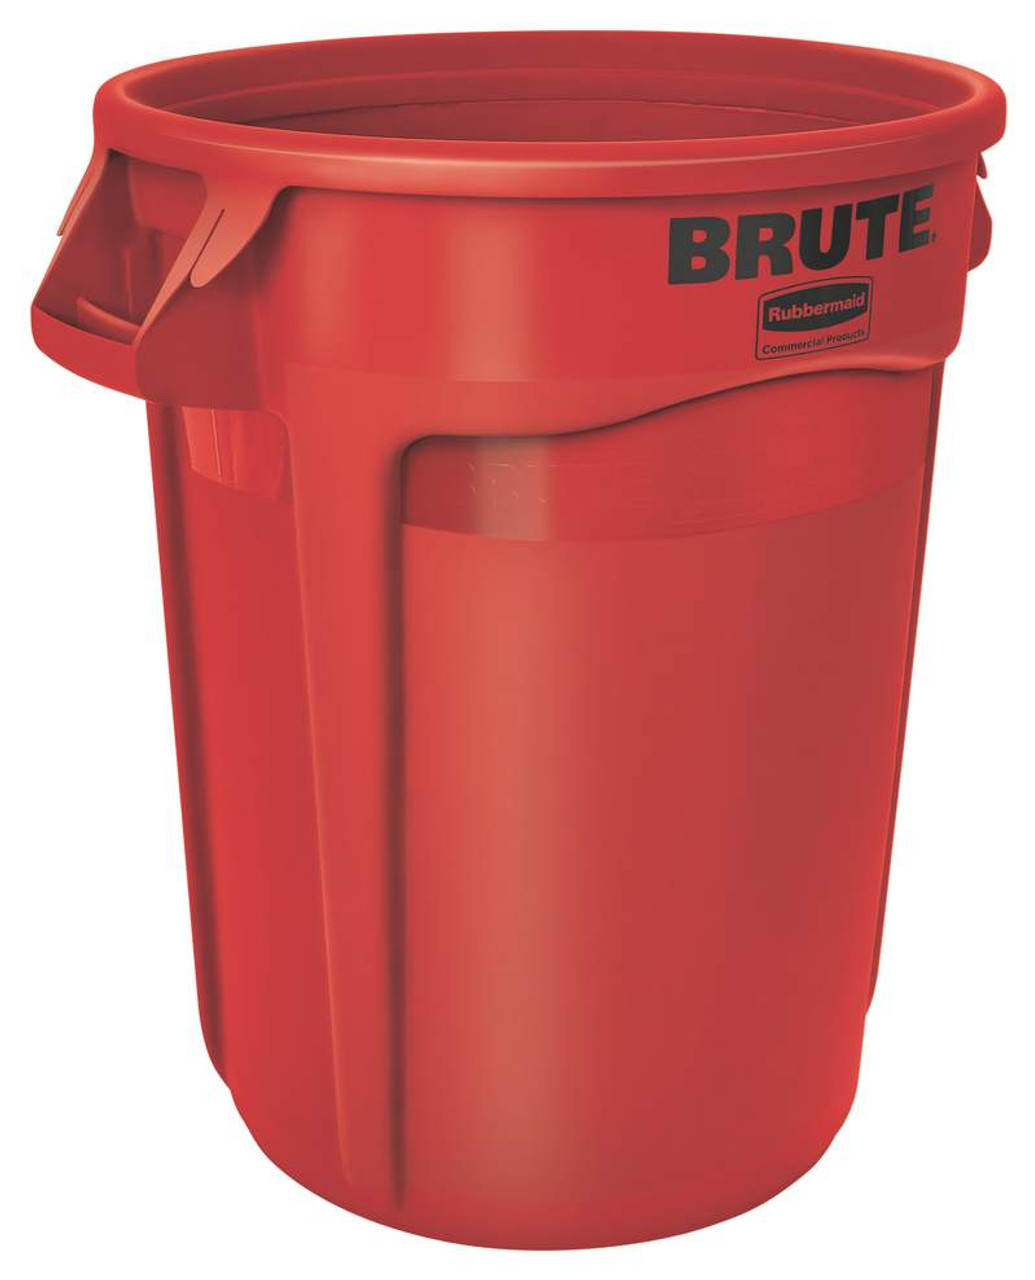 Rubbermaid Brute Container 121.1 L - Red - FG263200RED